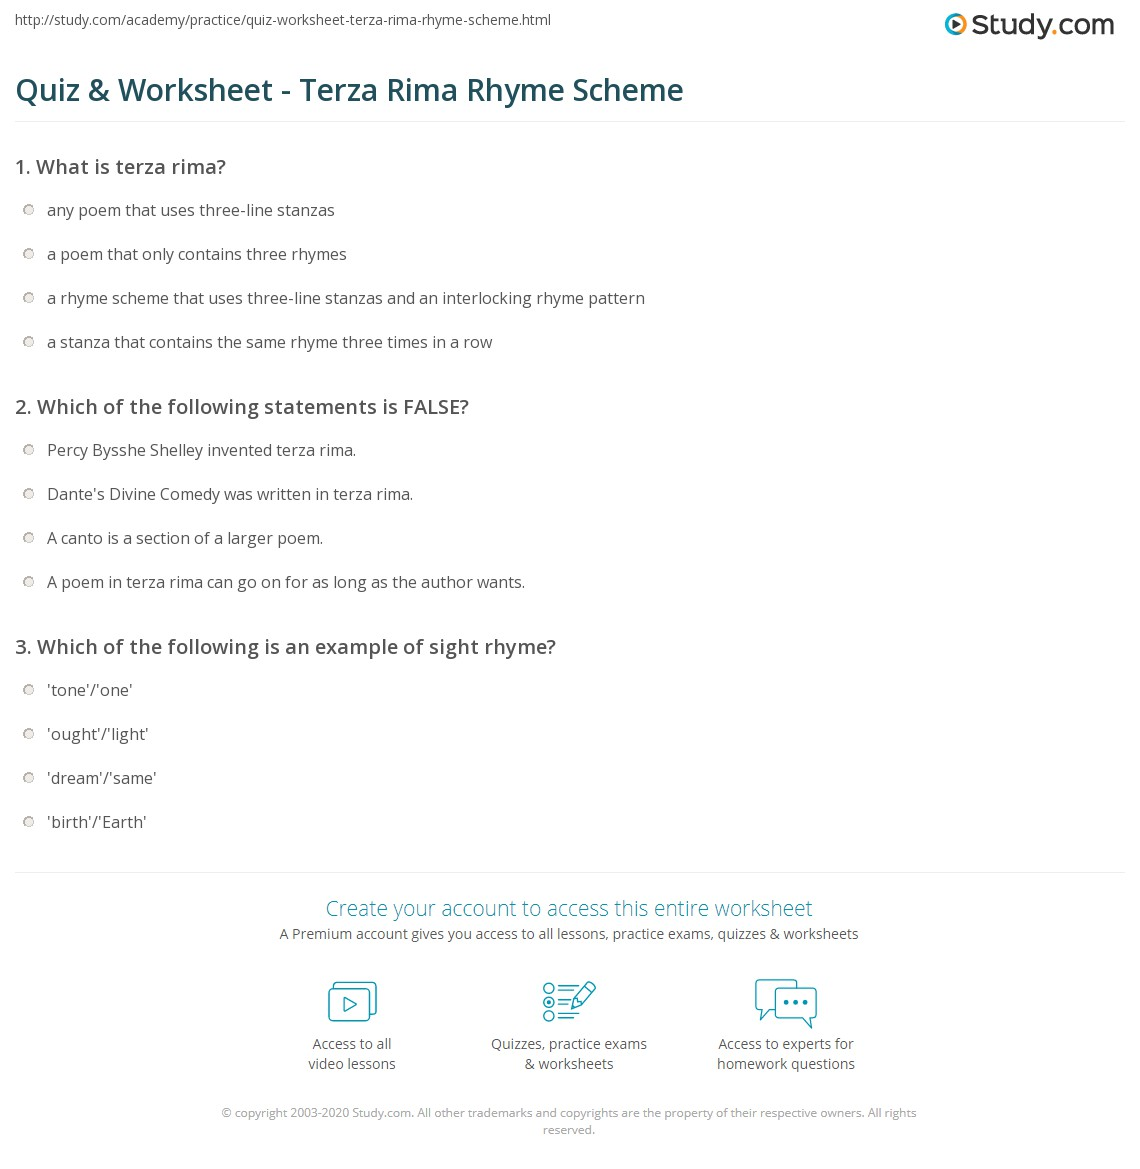 quiz worksheet terza rima rhyme scheme. Black Bedroom Furniture Sets. Home Design Ideas